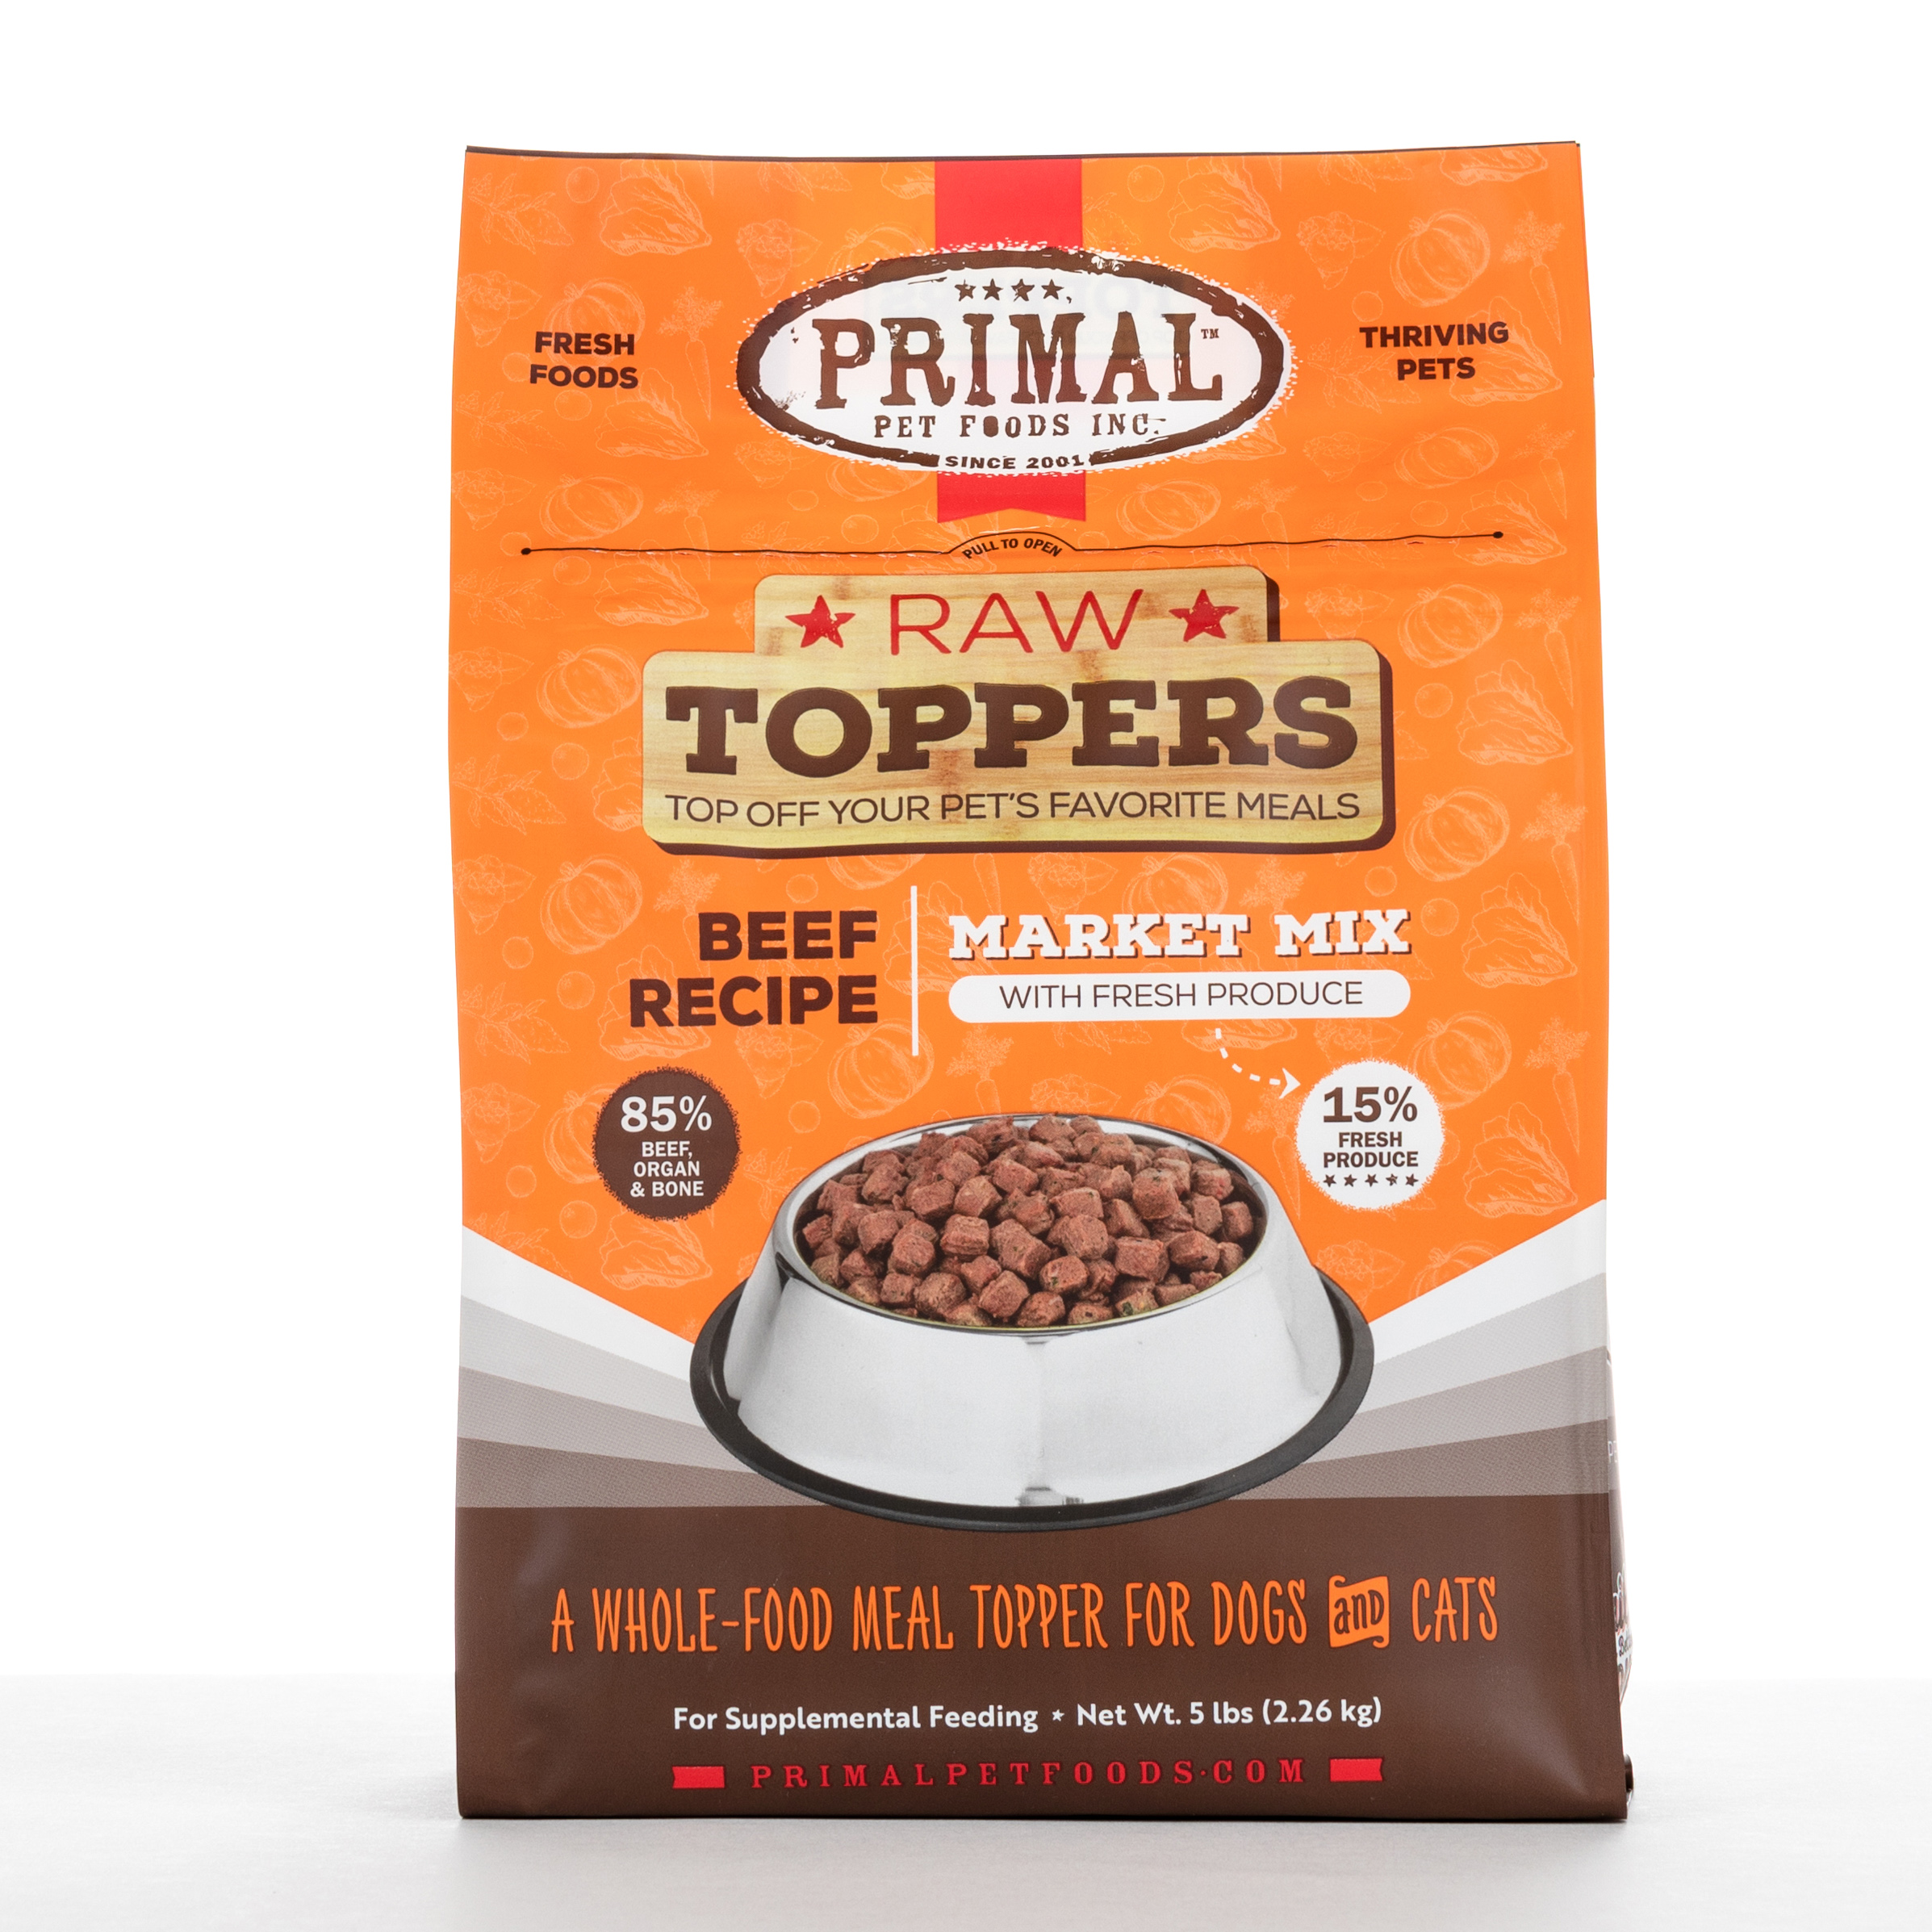 Primal Market Mix Topper - Beef, 5 lbs